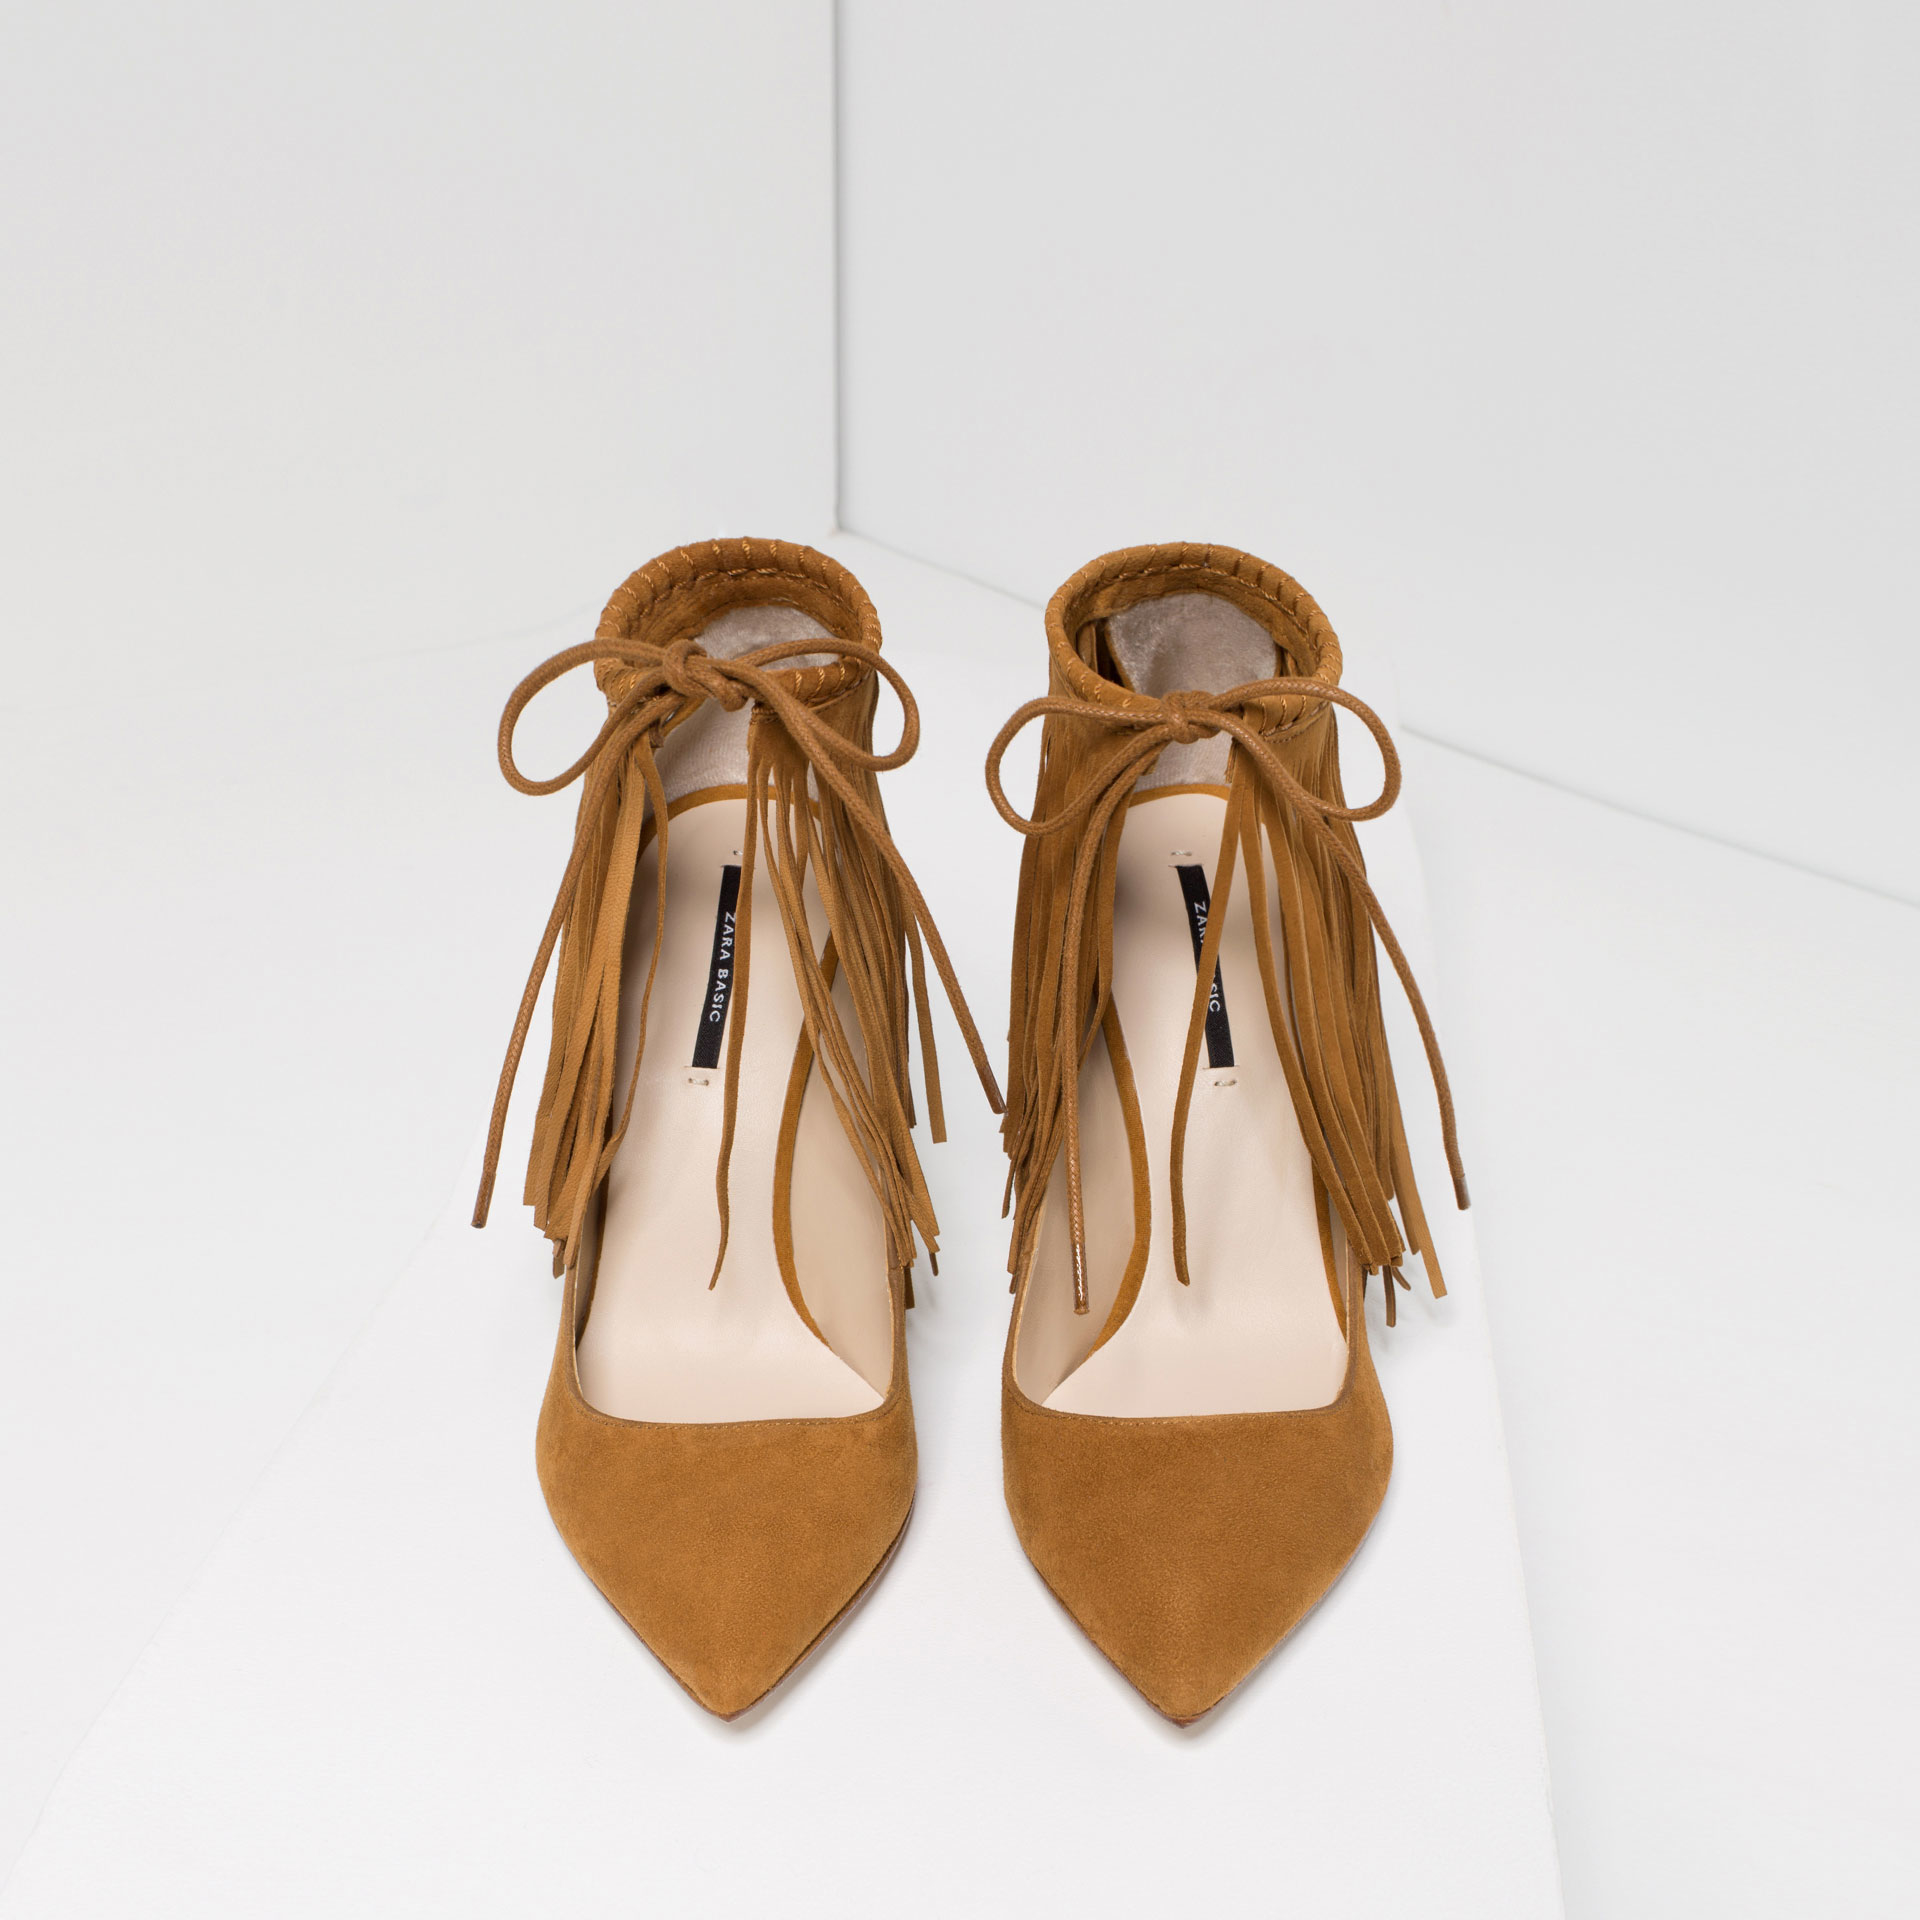 Goat leather work gloves - Zara Multicolor Fringed Leather High Heel Shoes Lyst